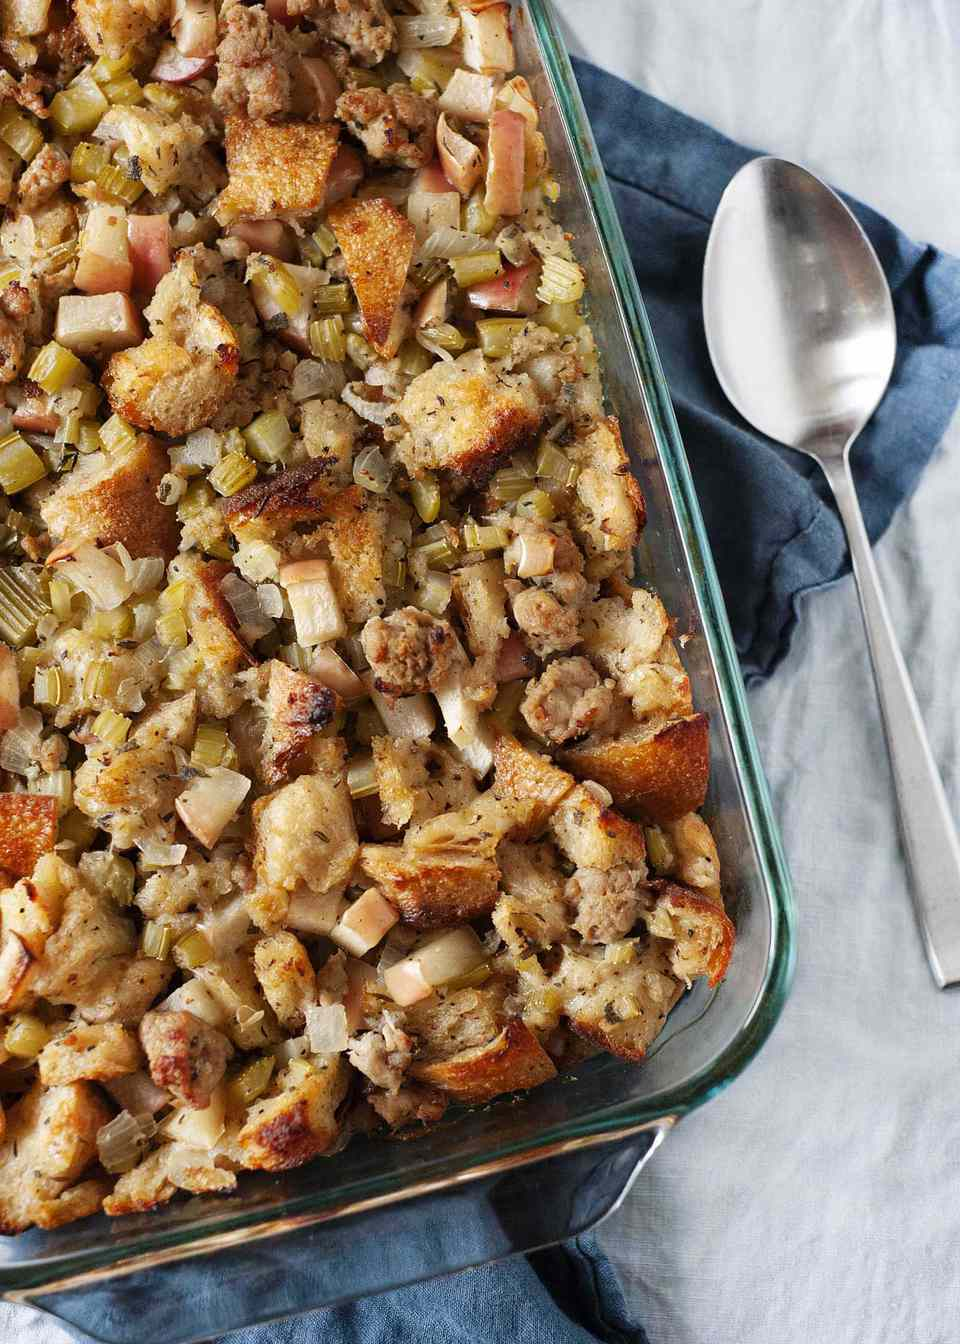 Thankgiving stuffing in a baking dish on a blue napkin with a silver spoon nearby.